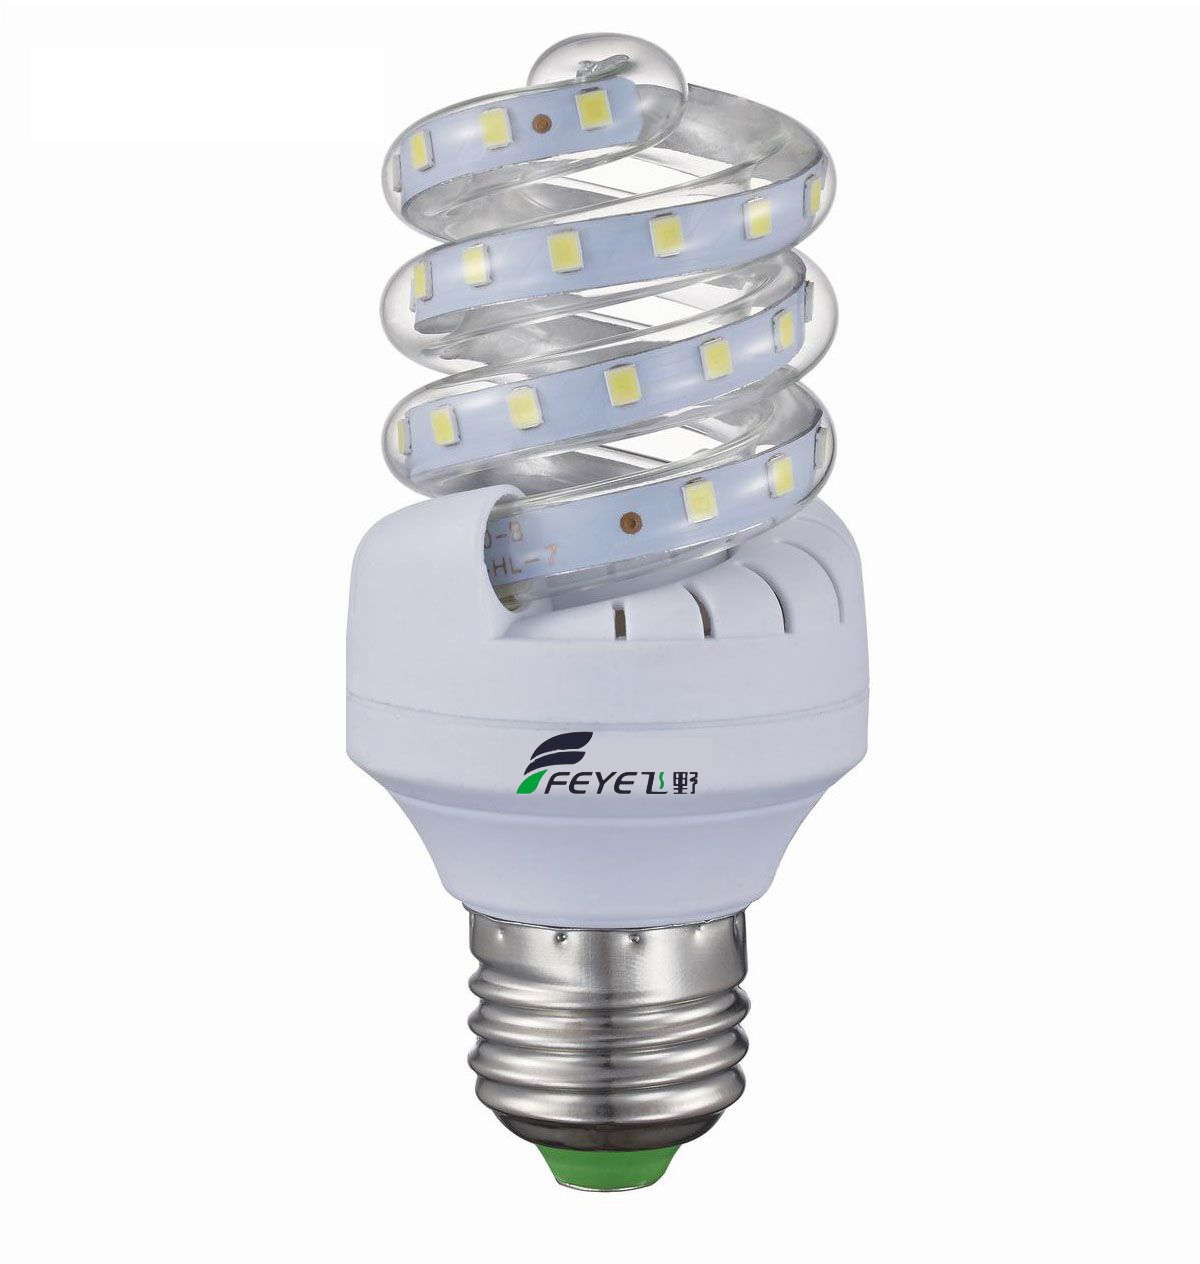 Spiral SMD Energy Saving Lamp 7w